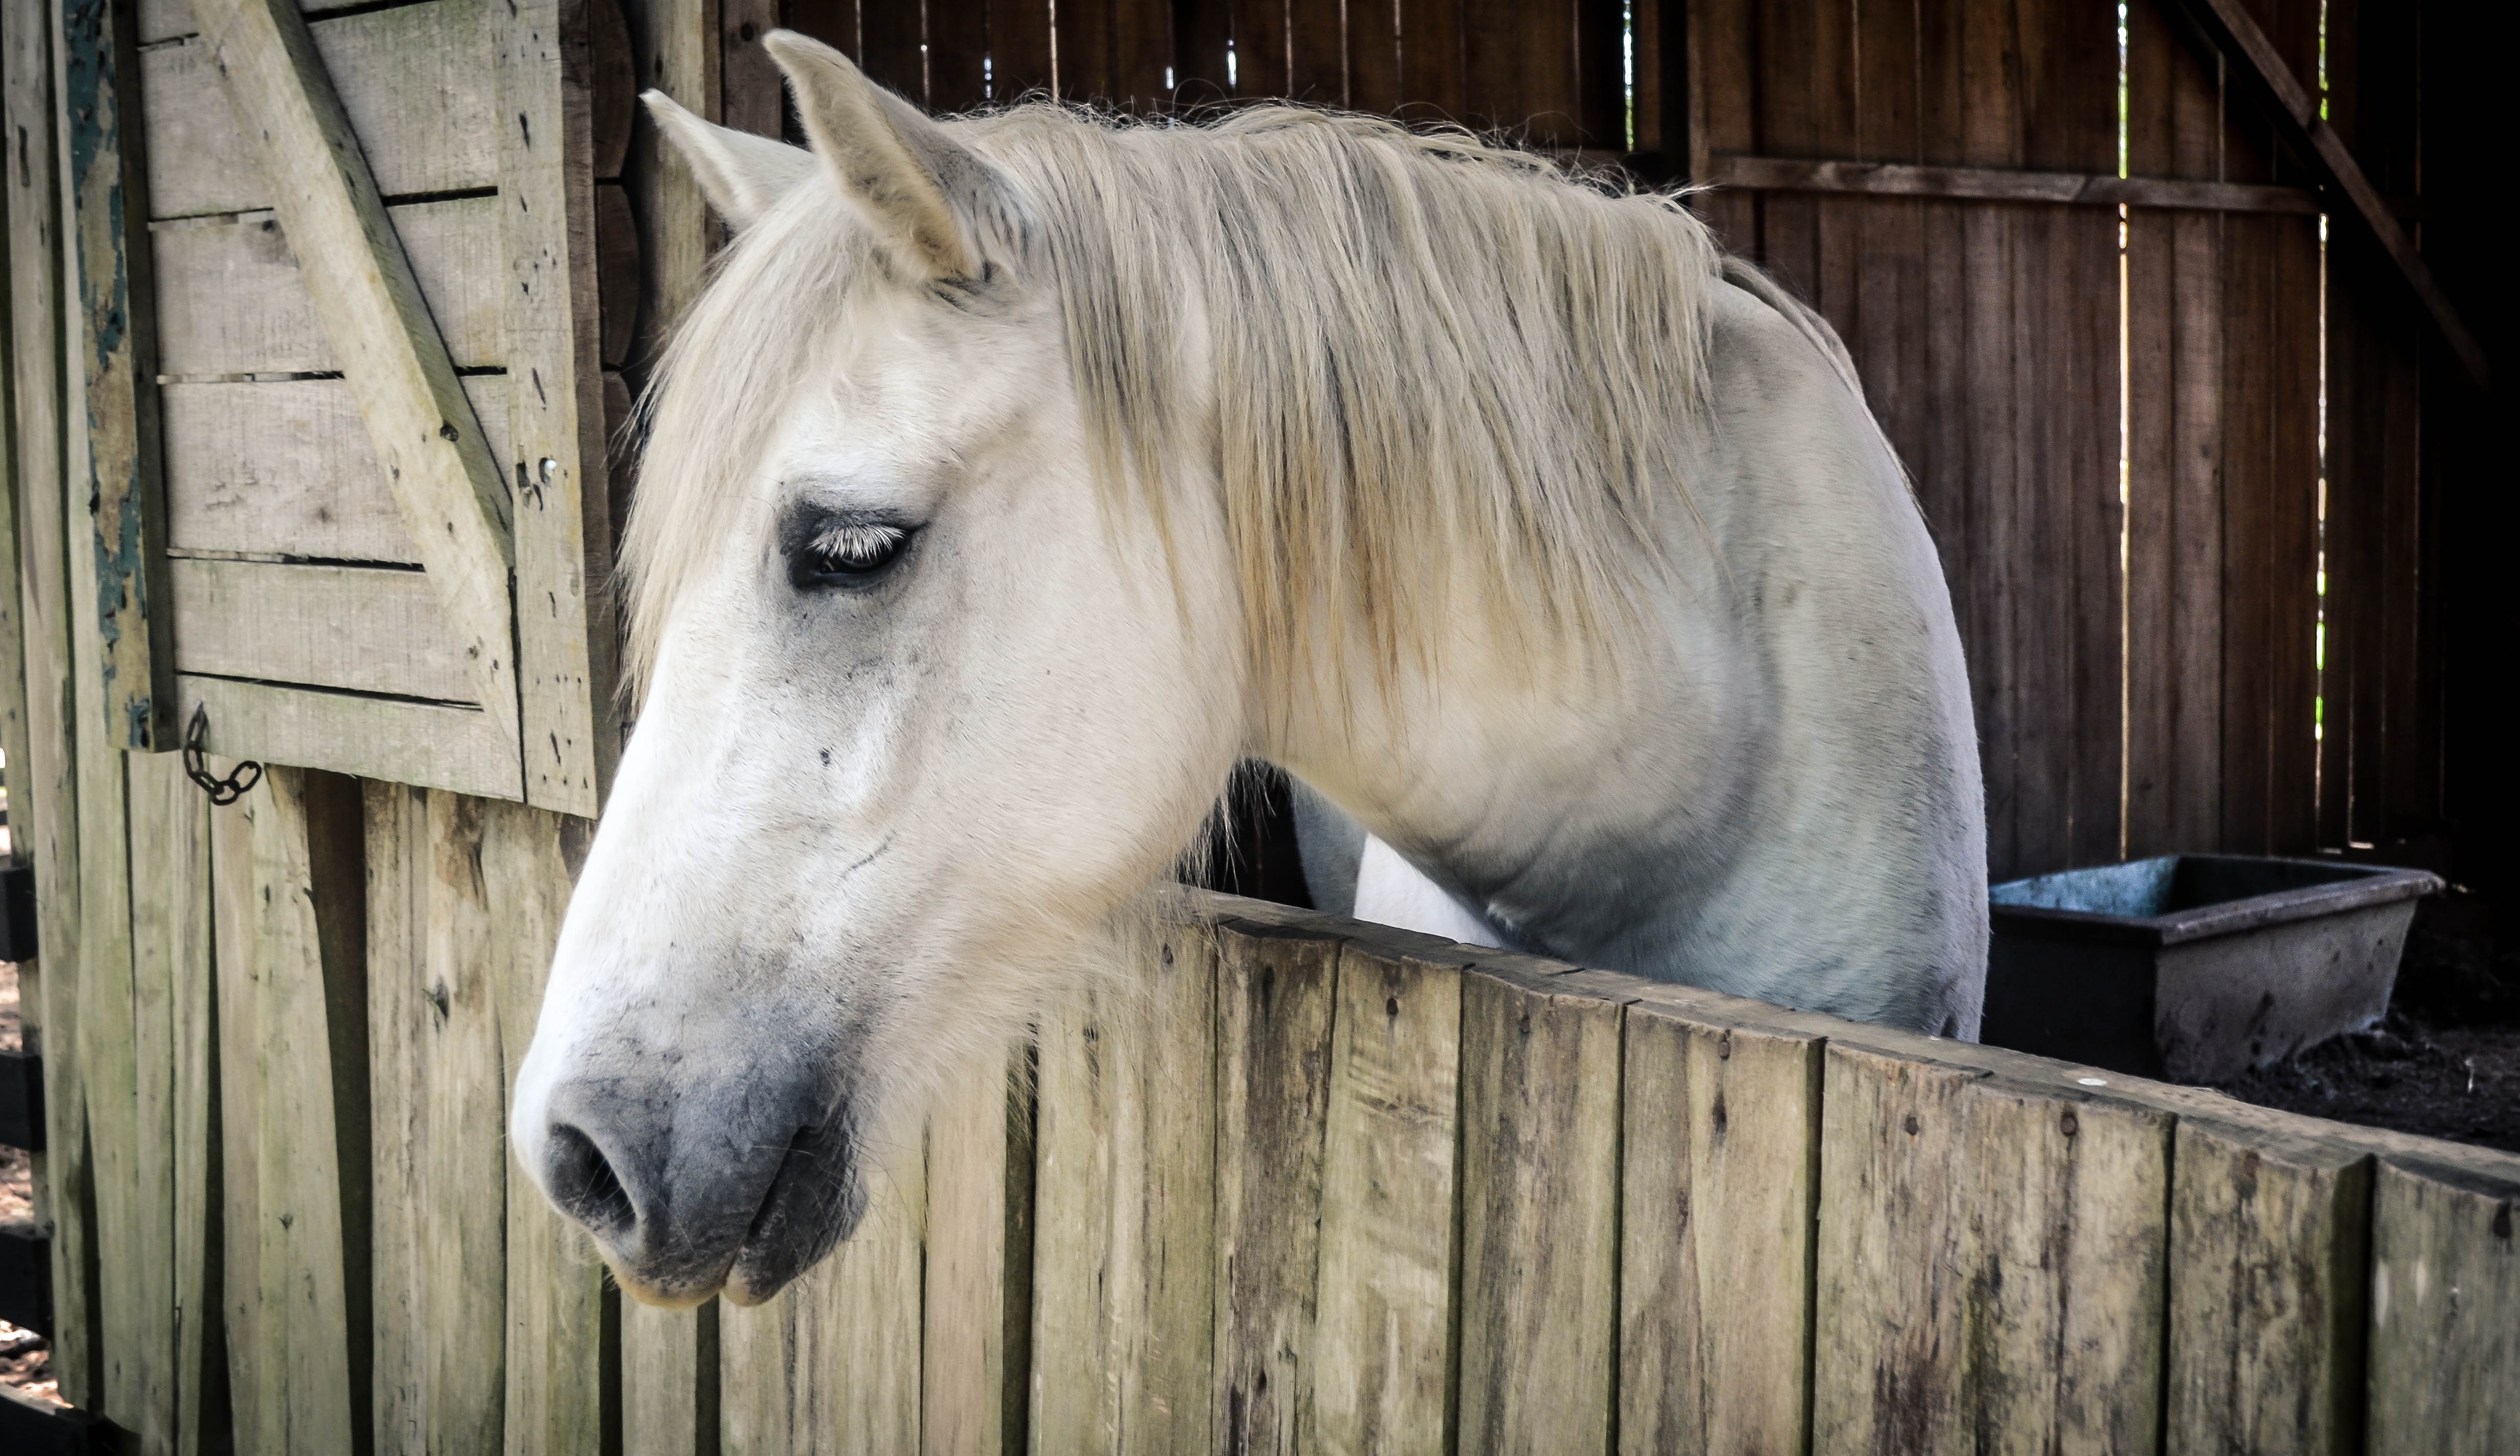 Beautiful White Horse In A Stable Free Image